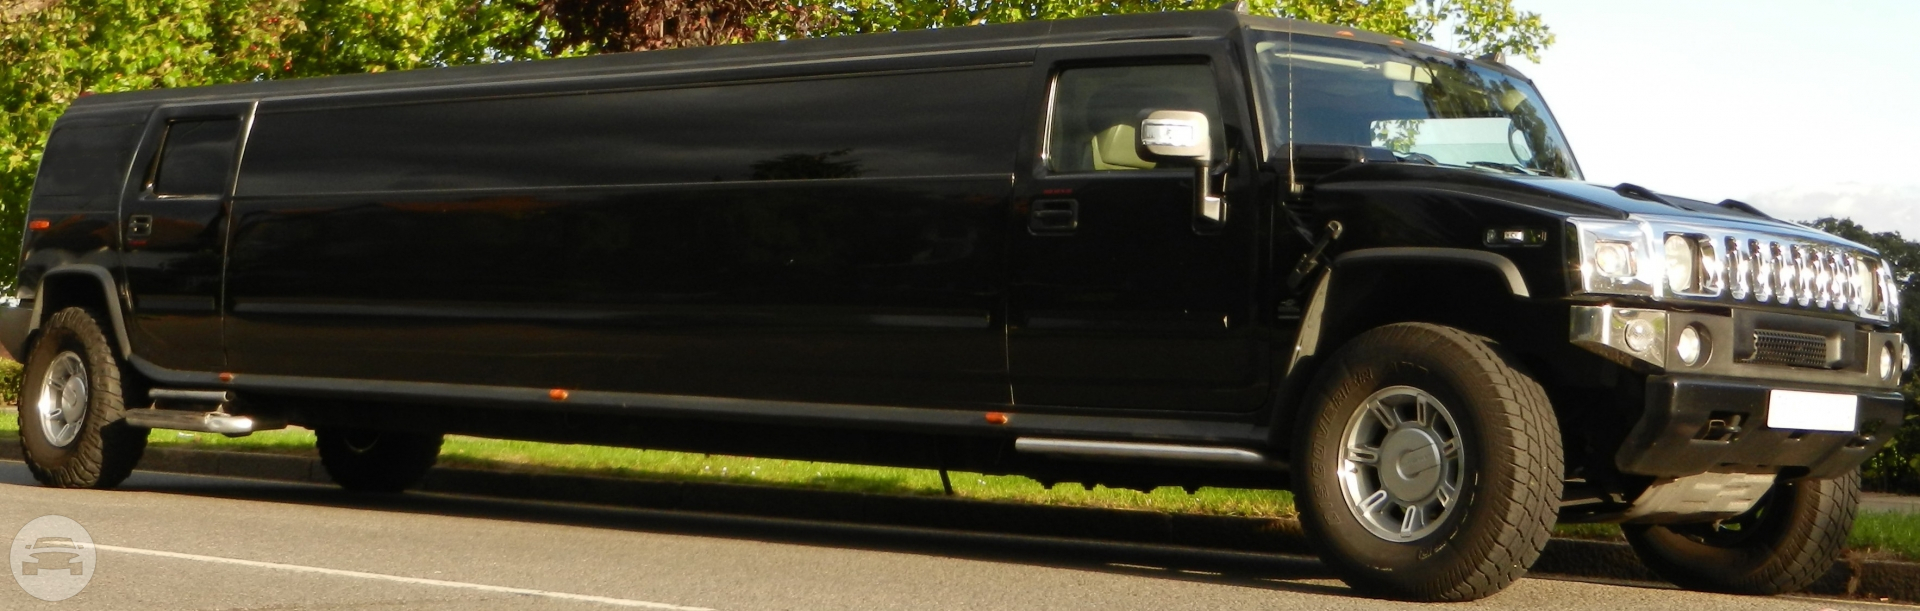 HUMMER H2 (BLACK) Hummer / Harwich, UK   / Hourly £0.00